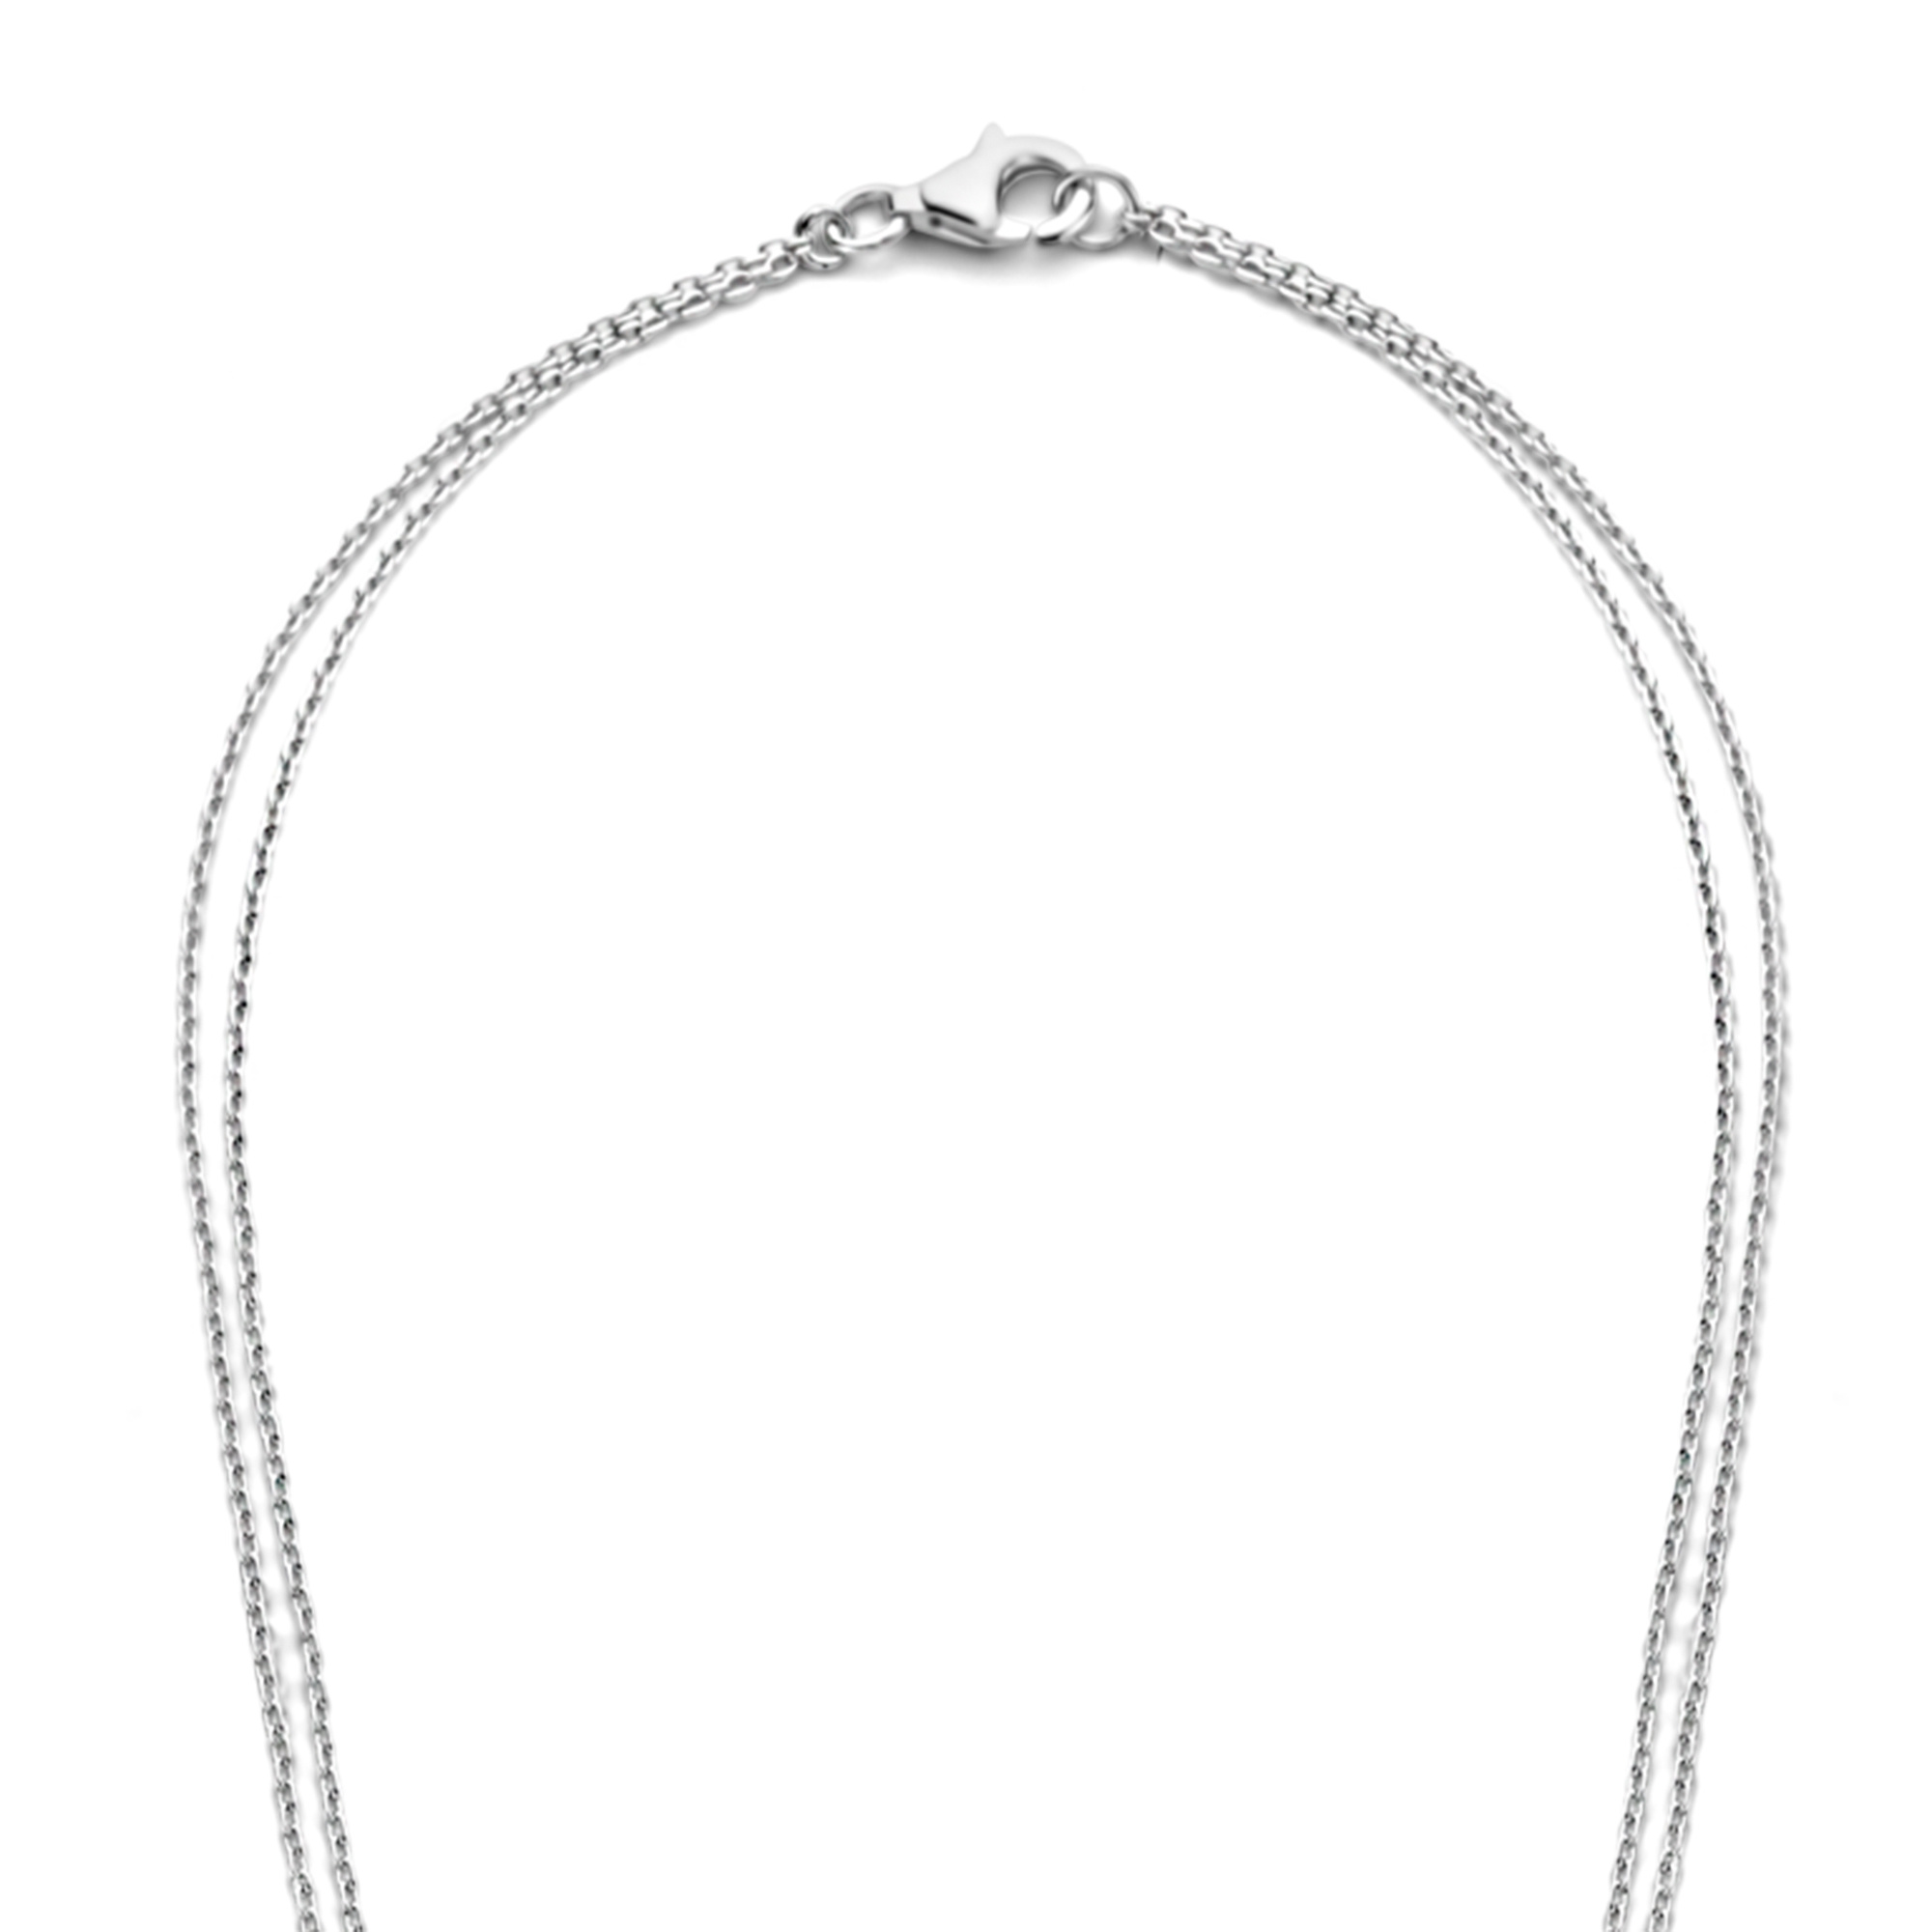 Selected Jewels Mila Elodie collana doppia in argento sterling 925